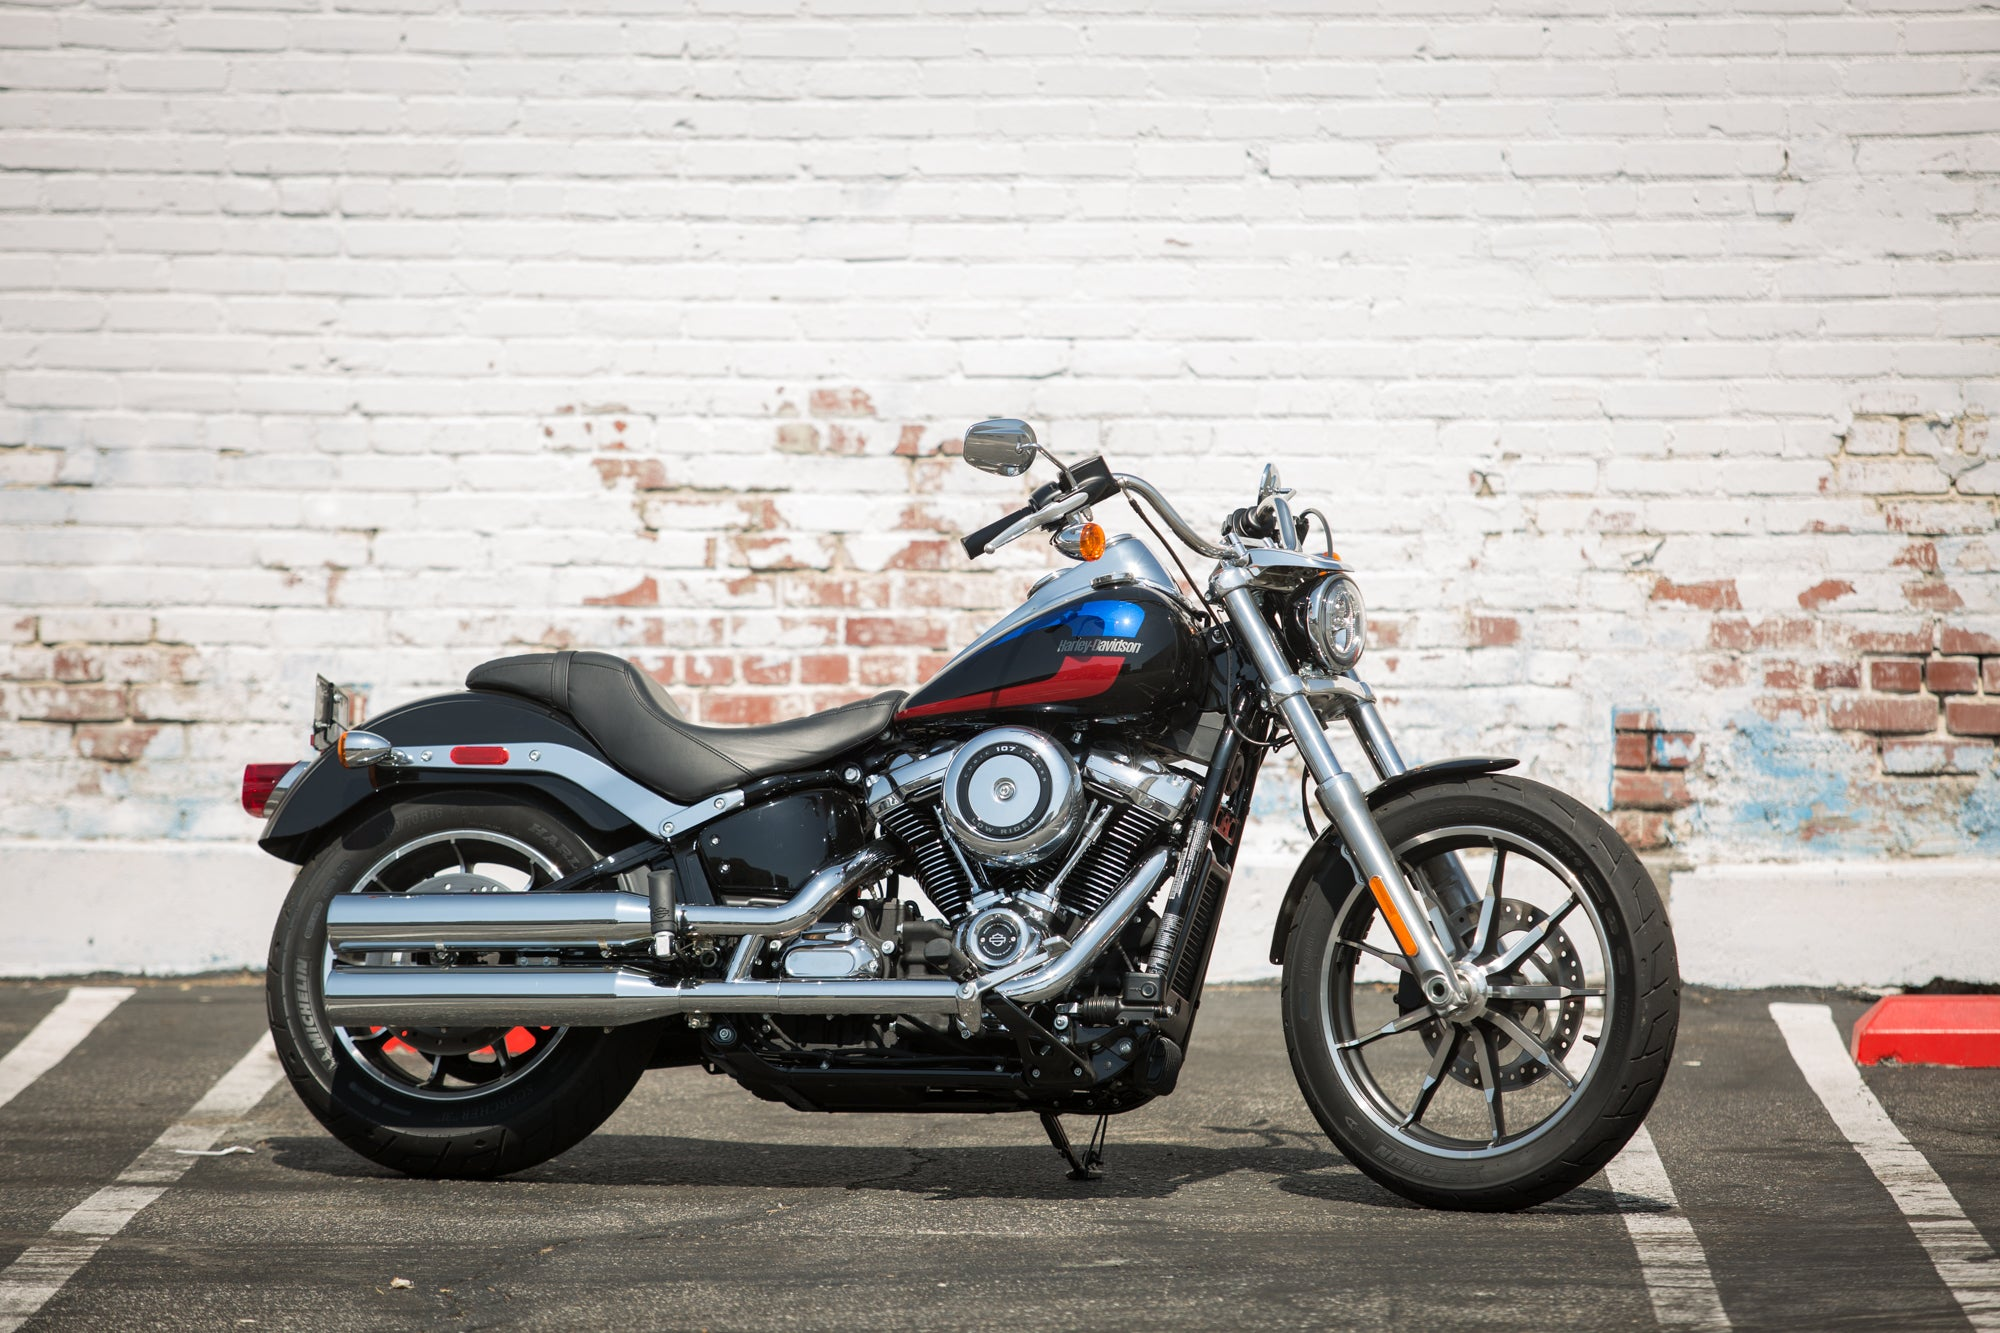 Review: 2018 Harley-Davidson Softails: Fat Bob / Street Bob